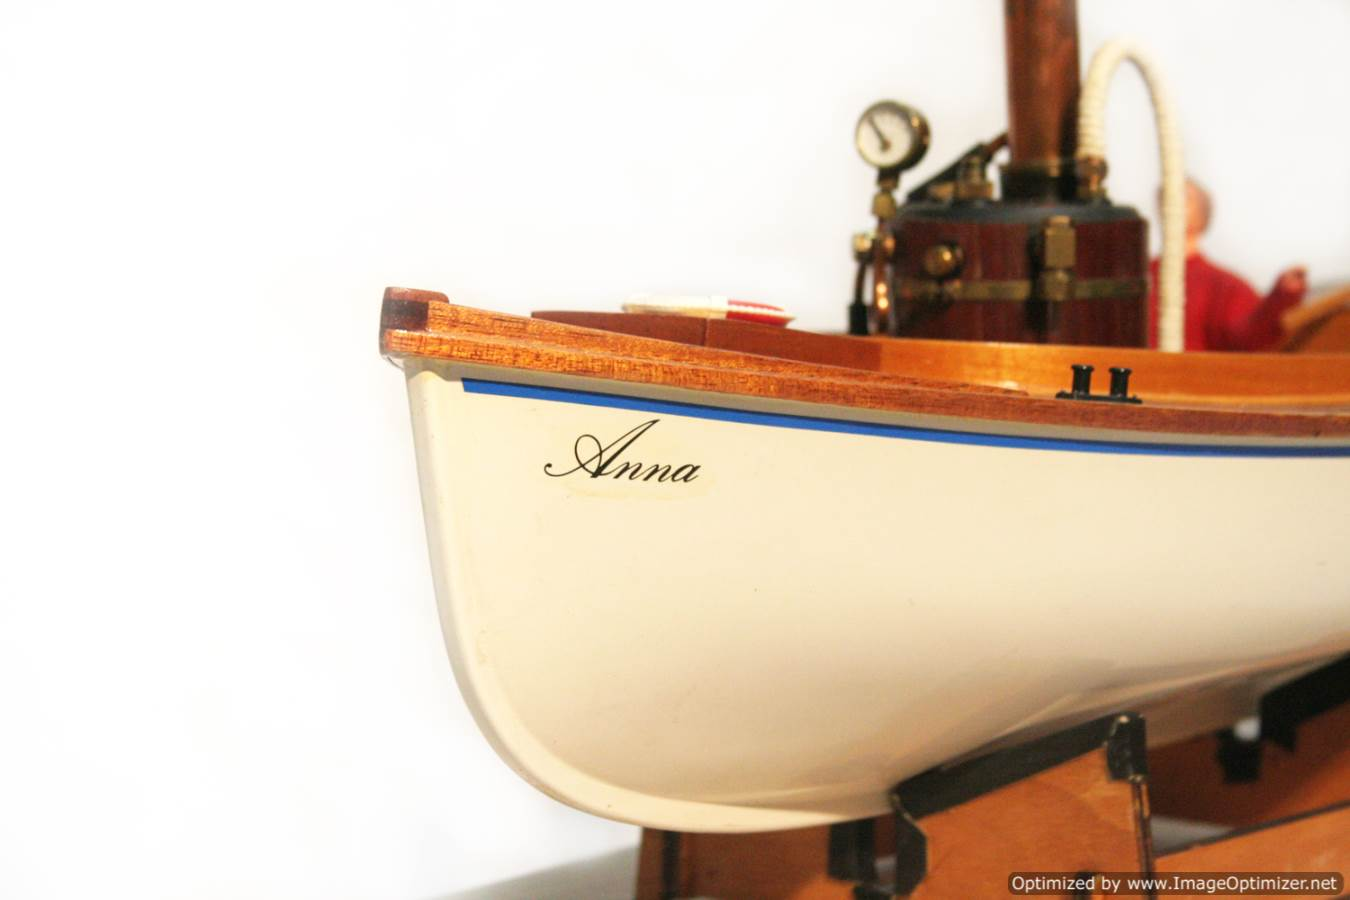 test anna-cheddar-steam-boat-live-steam-model-for-sale-12-optimized